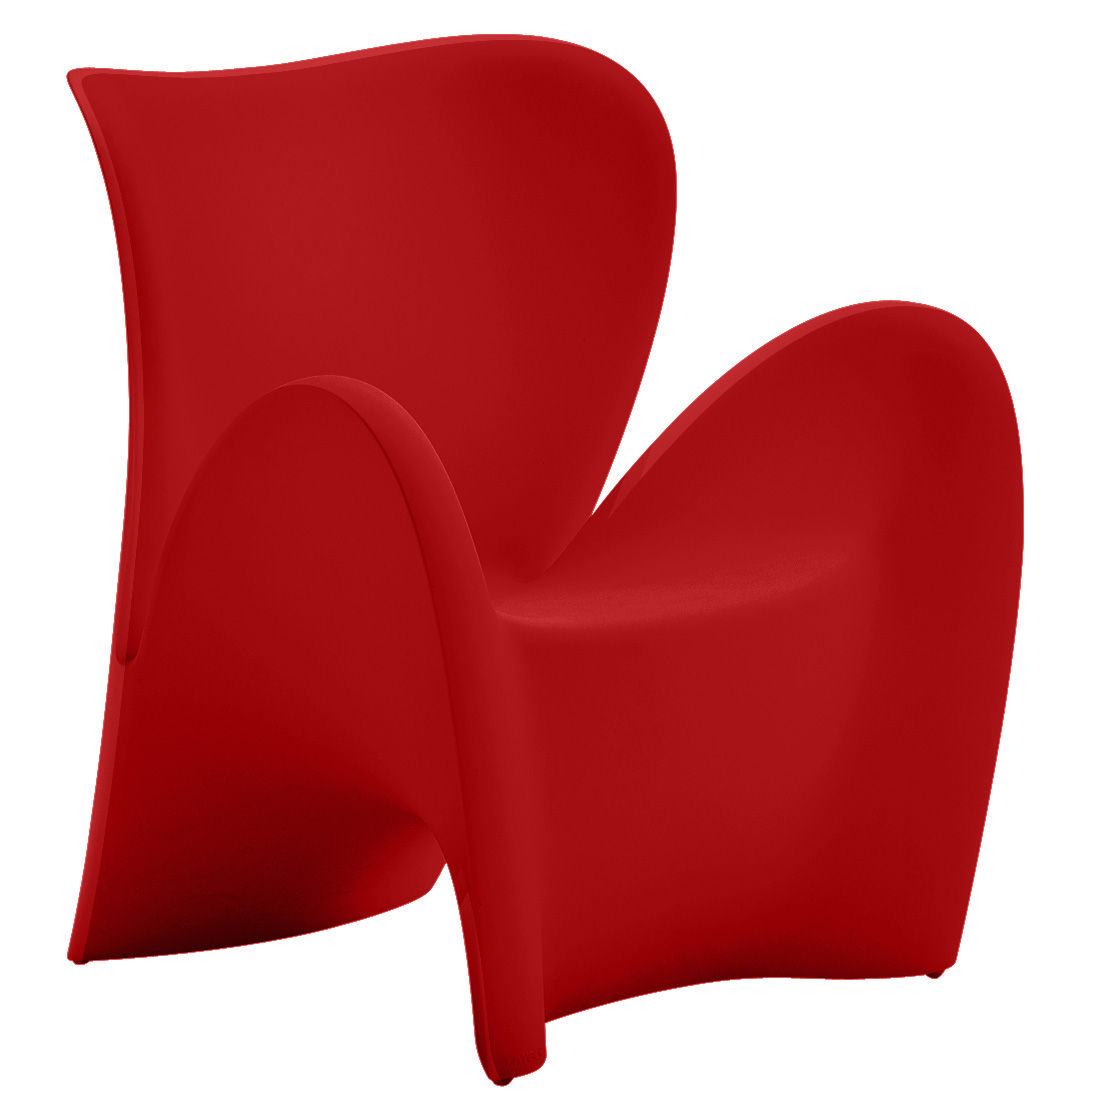 fauteuil lily plastique rouge mat myyour. Black Bedroom Furniture Sets. Home Design Ideas